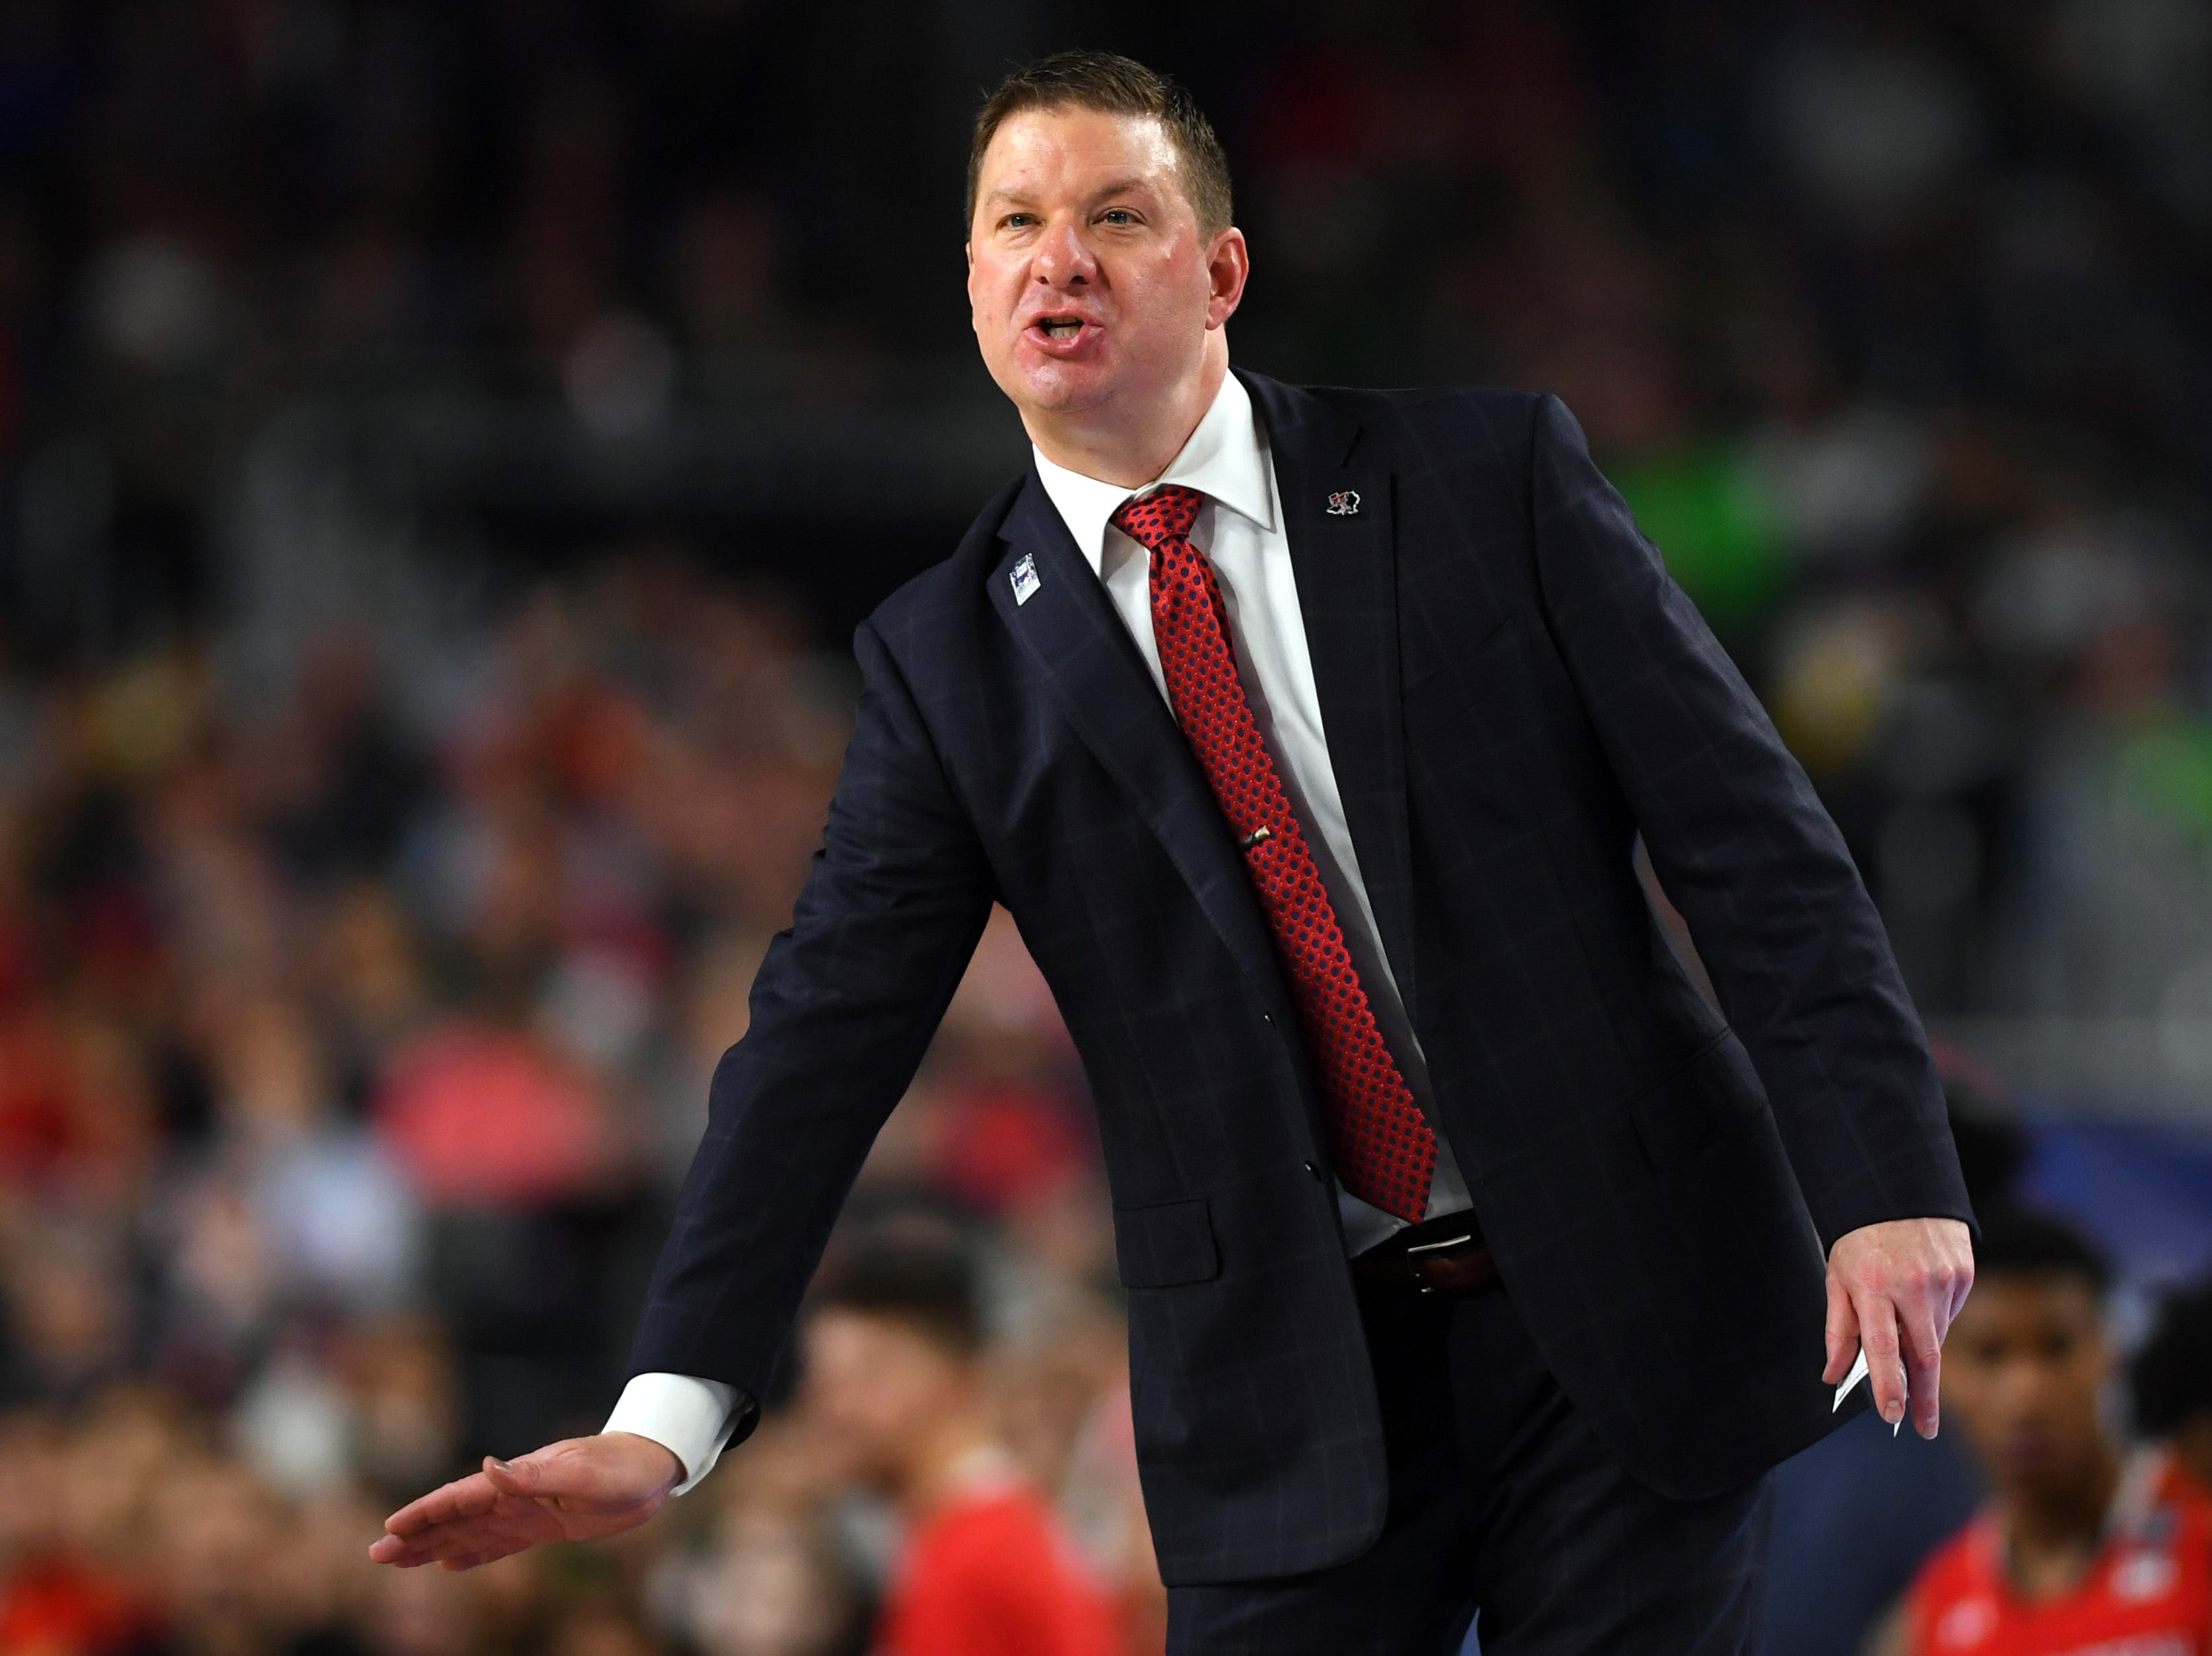 Apr 6, 2019; Minneapolis, MN, USA; Texas Tech Red Raiders head coach Chris Beard reacts during the second half against the Michigan State Spartans in the semifinals of the 2019 men's Final Four at US Bank Stadium. Mandatory Credit: Bob Donnan-USA TODAY Sports